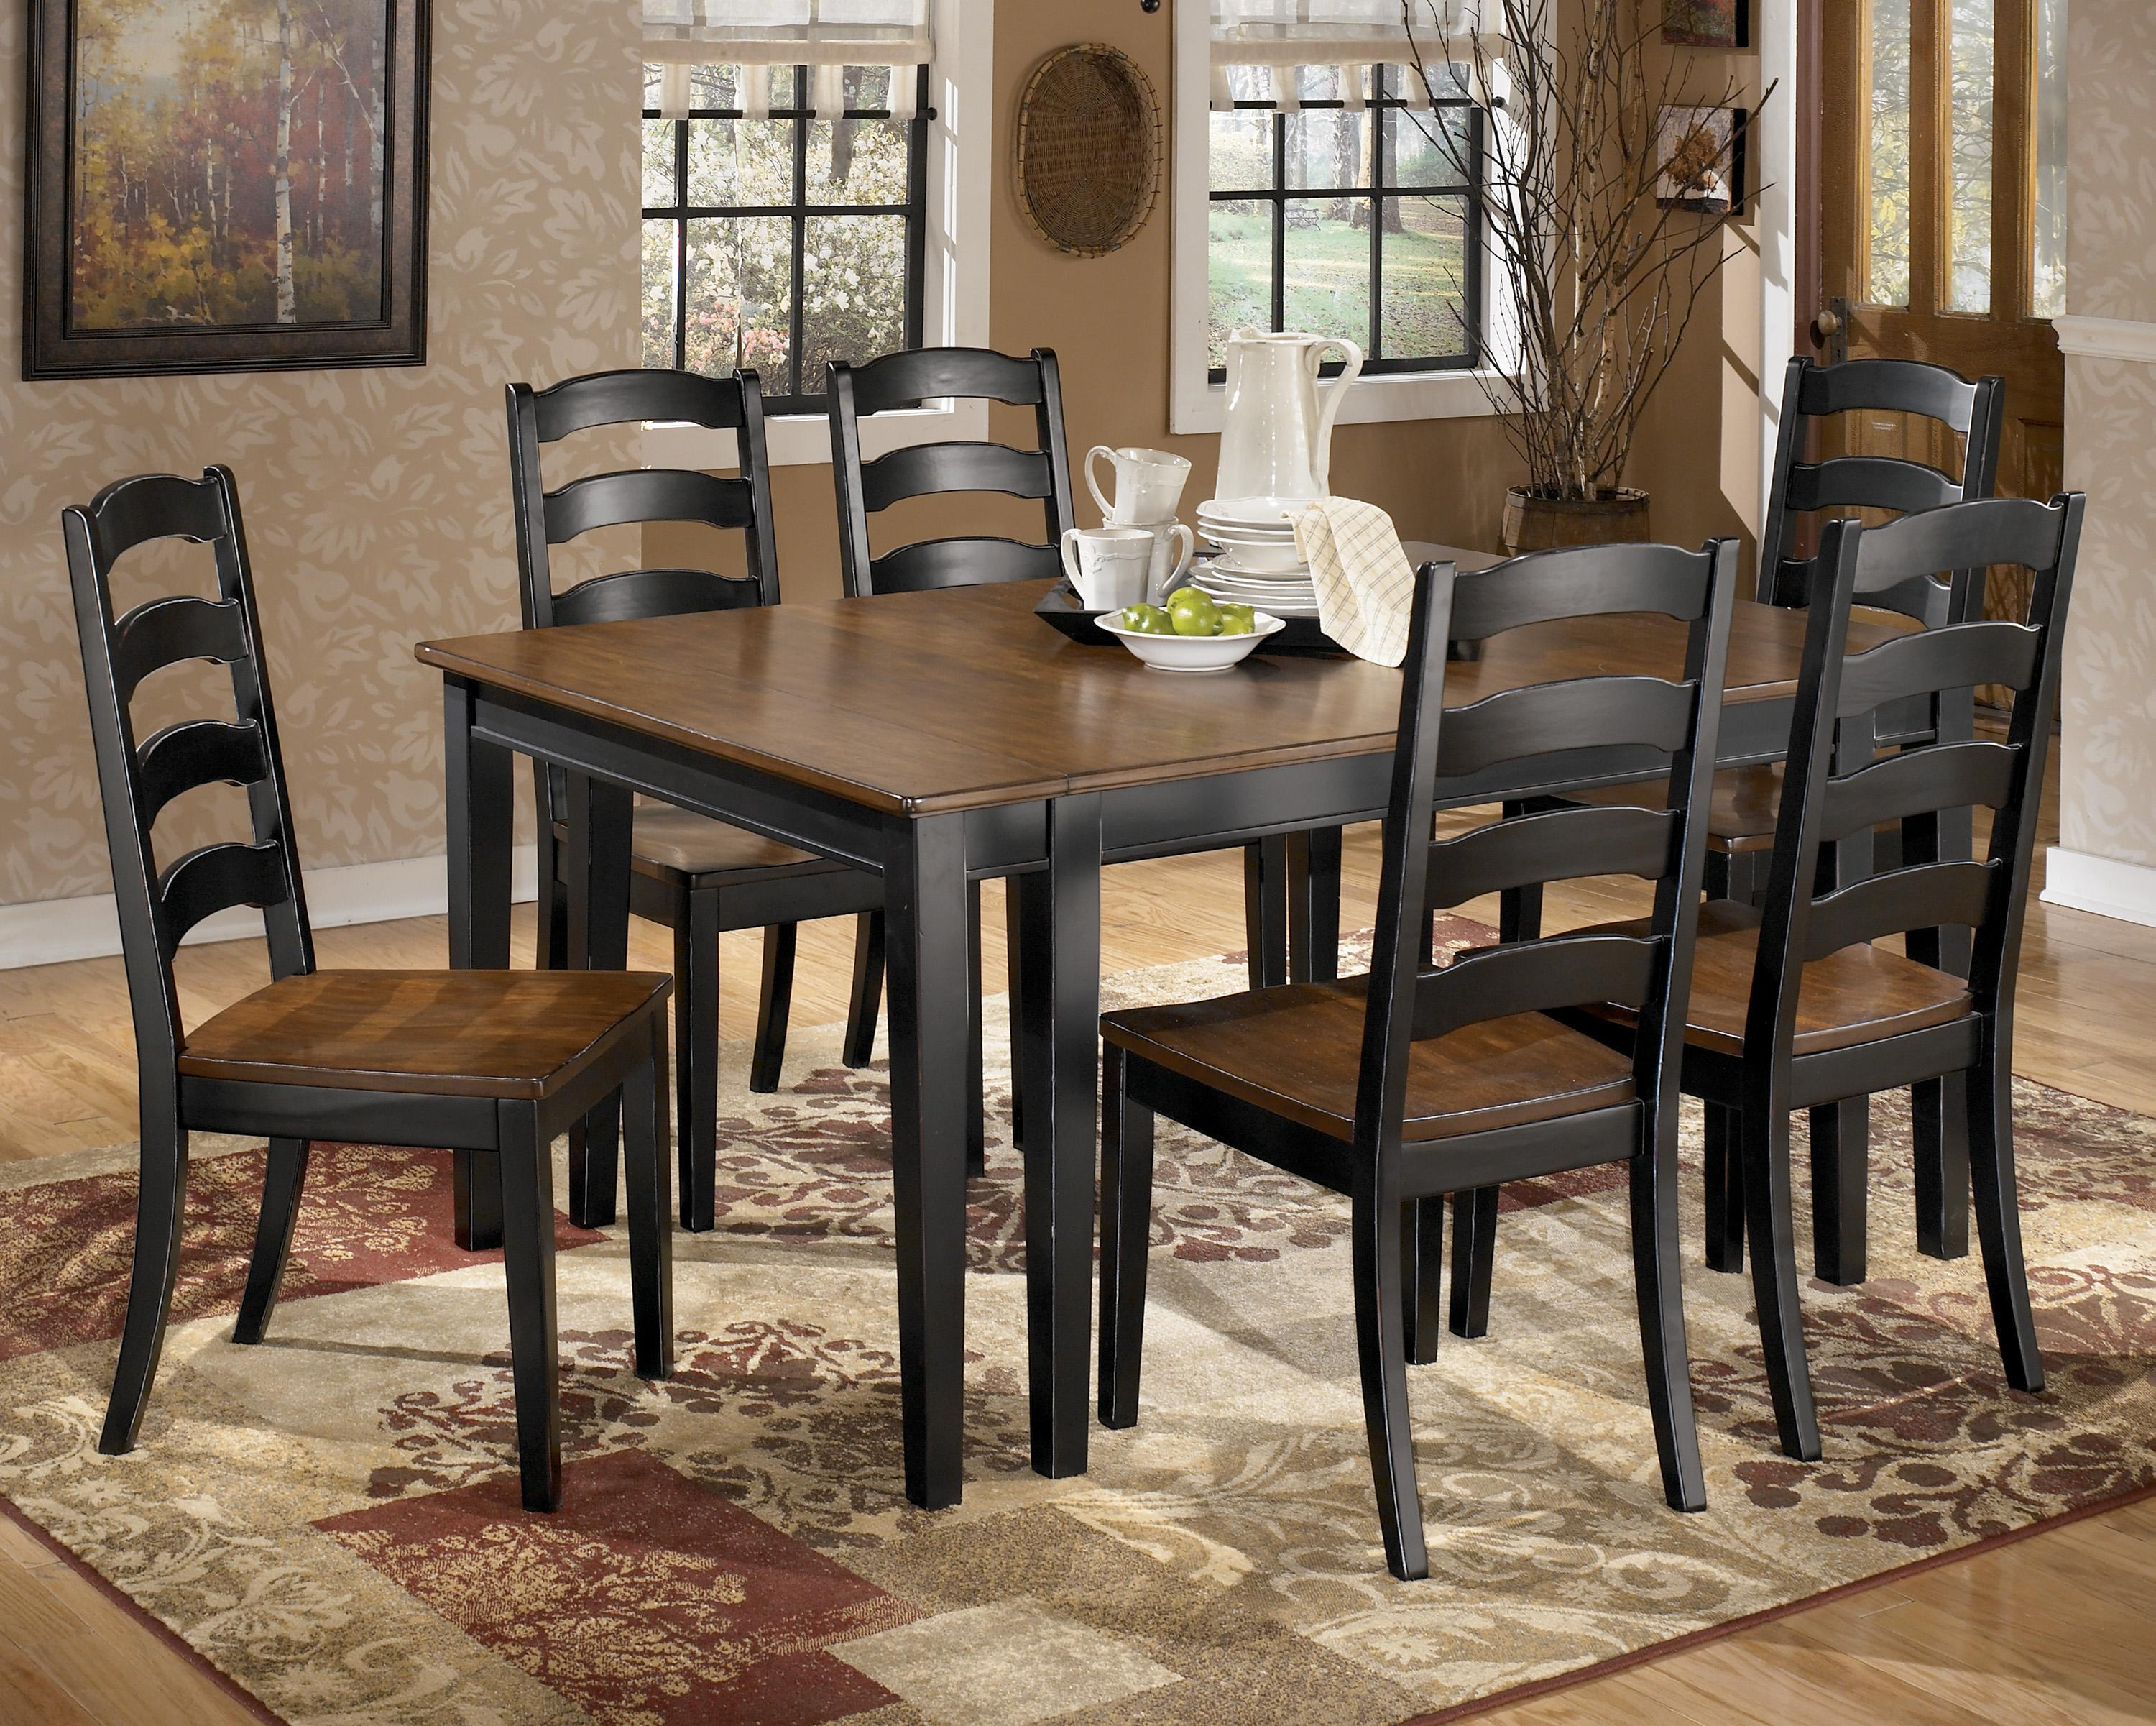 Dining room sets target homesfeed Dining room sets